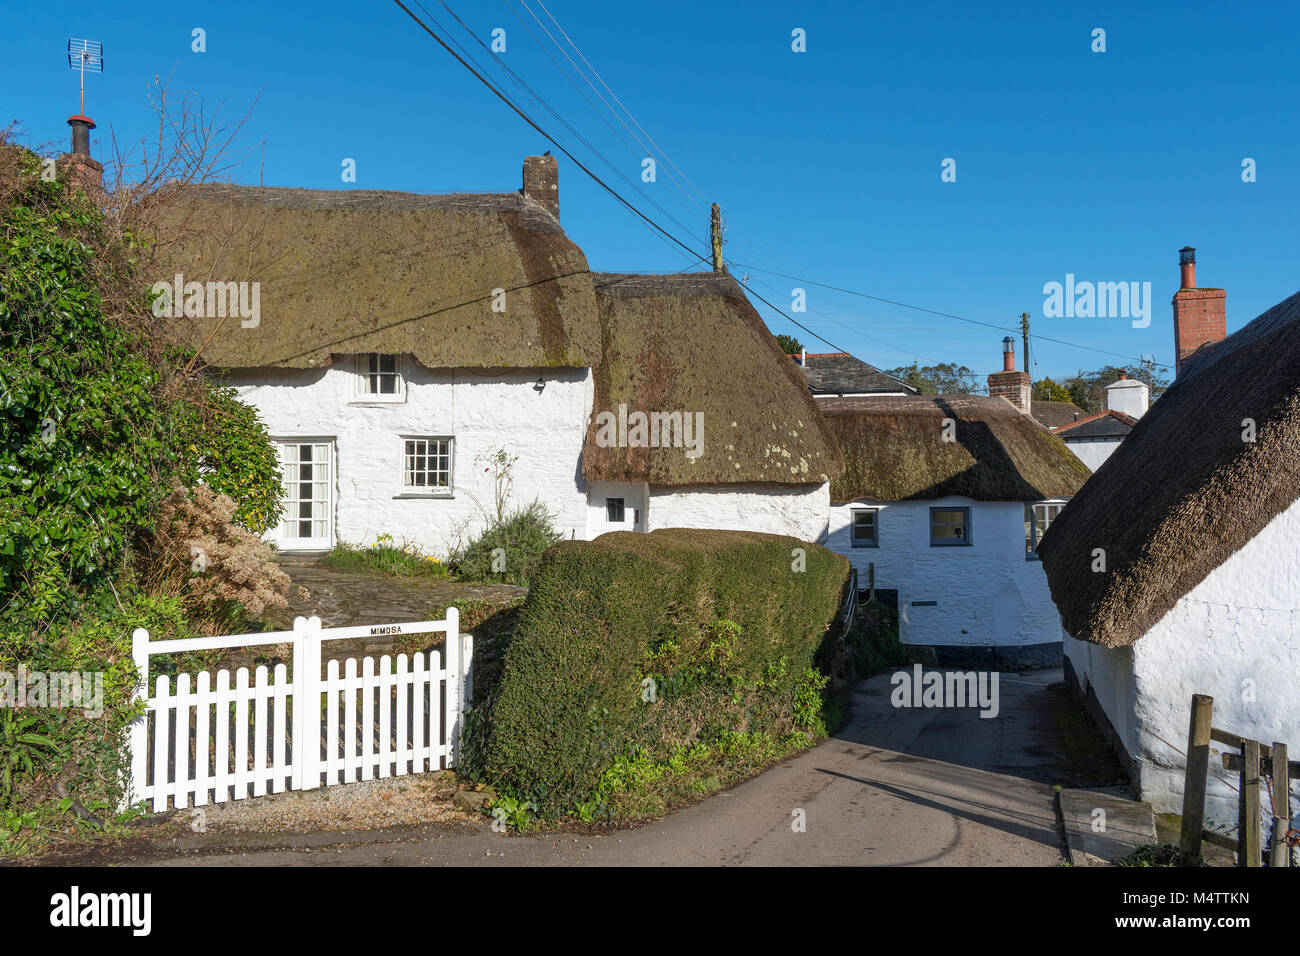 thatched cottages in helford village, cornwall, england, britain, uk. - Stock Image